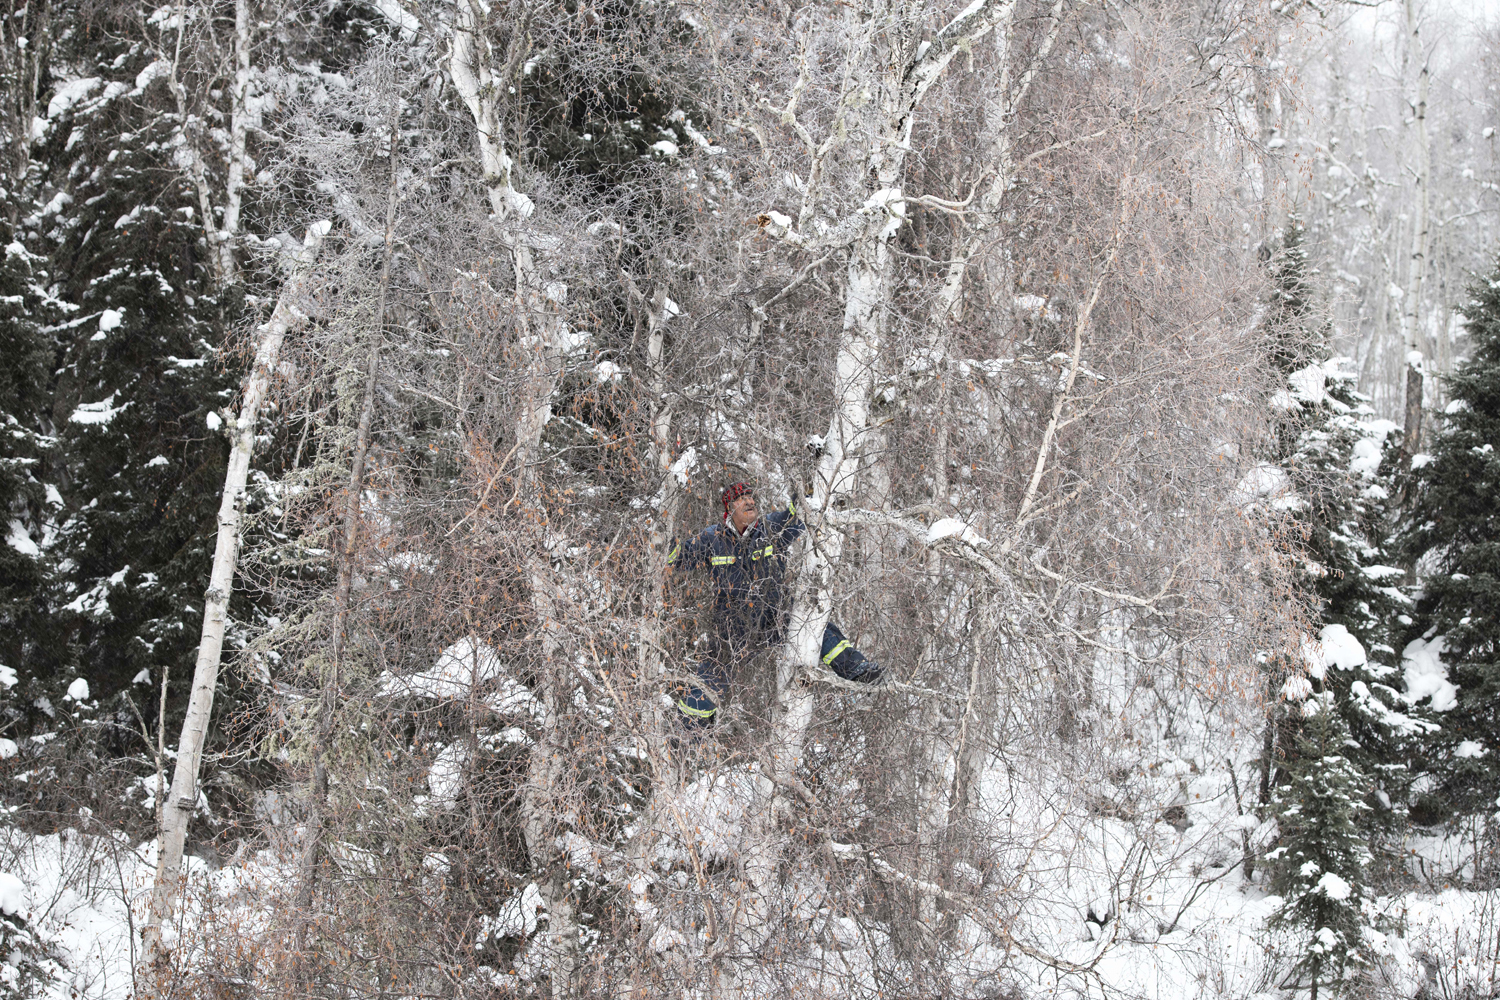 Chaga is often found high up on birch trees. Sometimes Tommy Bird waits for the trees to fall; sometimes he makes risky moves to harvest it. (Kandis Riese)